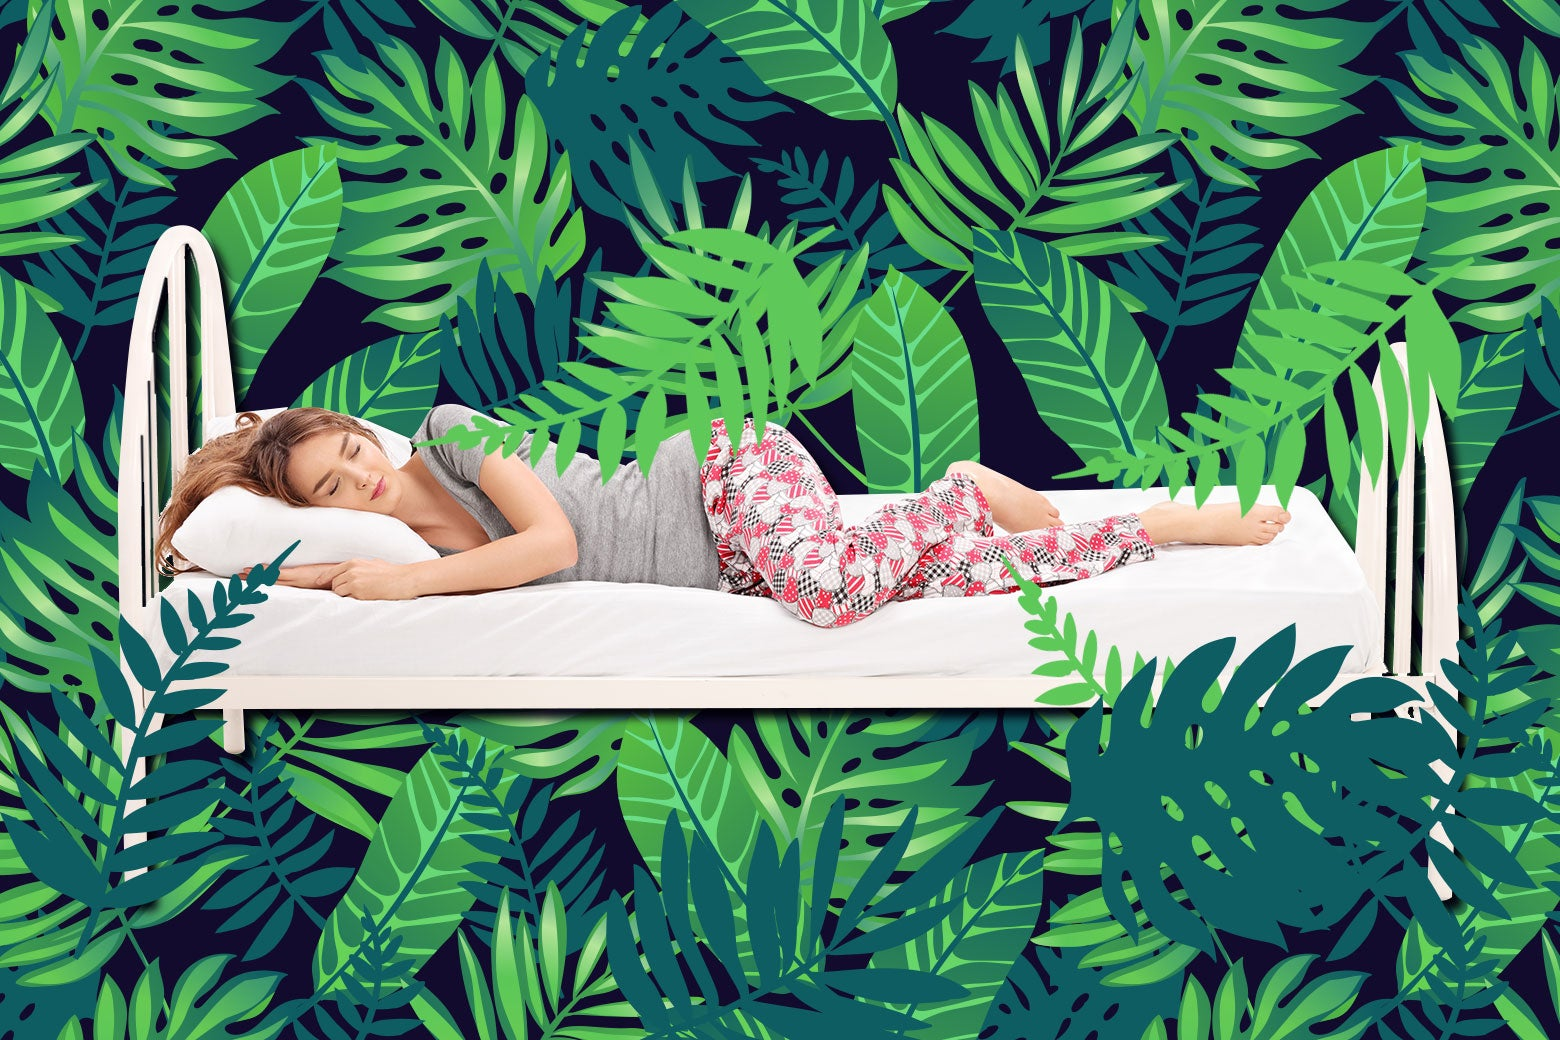 Woman sleeping in her bed in the jungle.